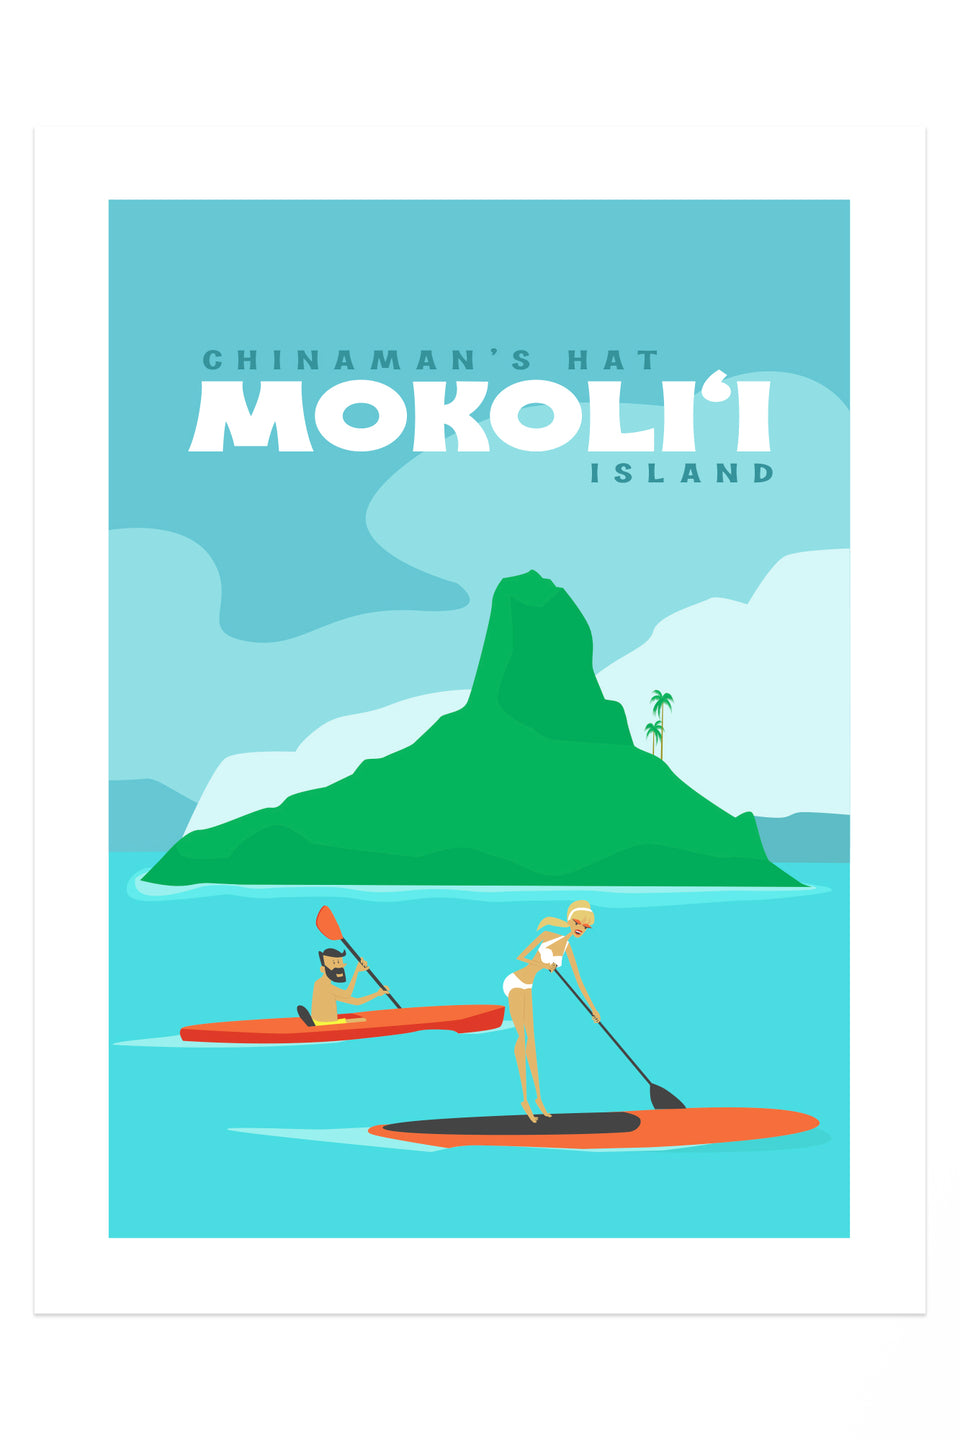 Mokoli'i Chinaman's Hat (Retro Hawai'i Travel Poster)